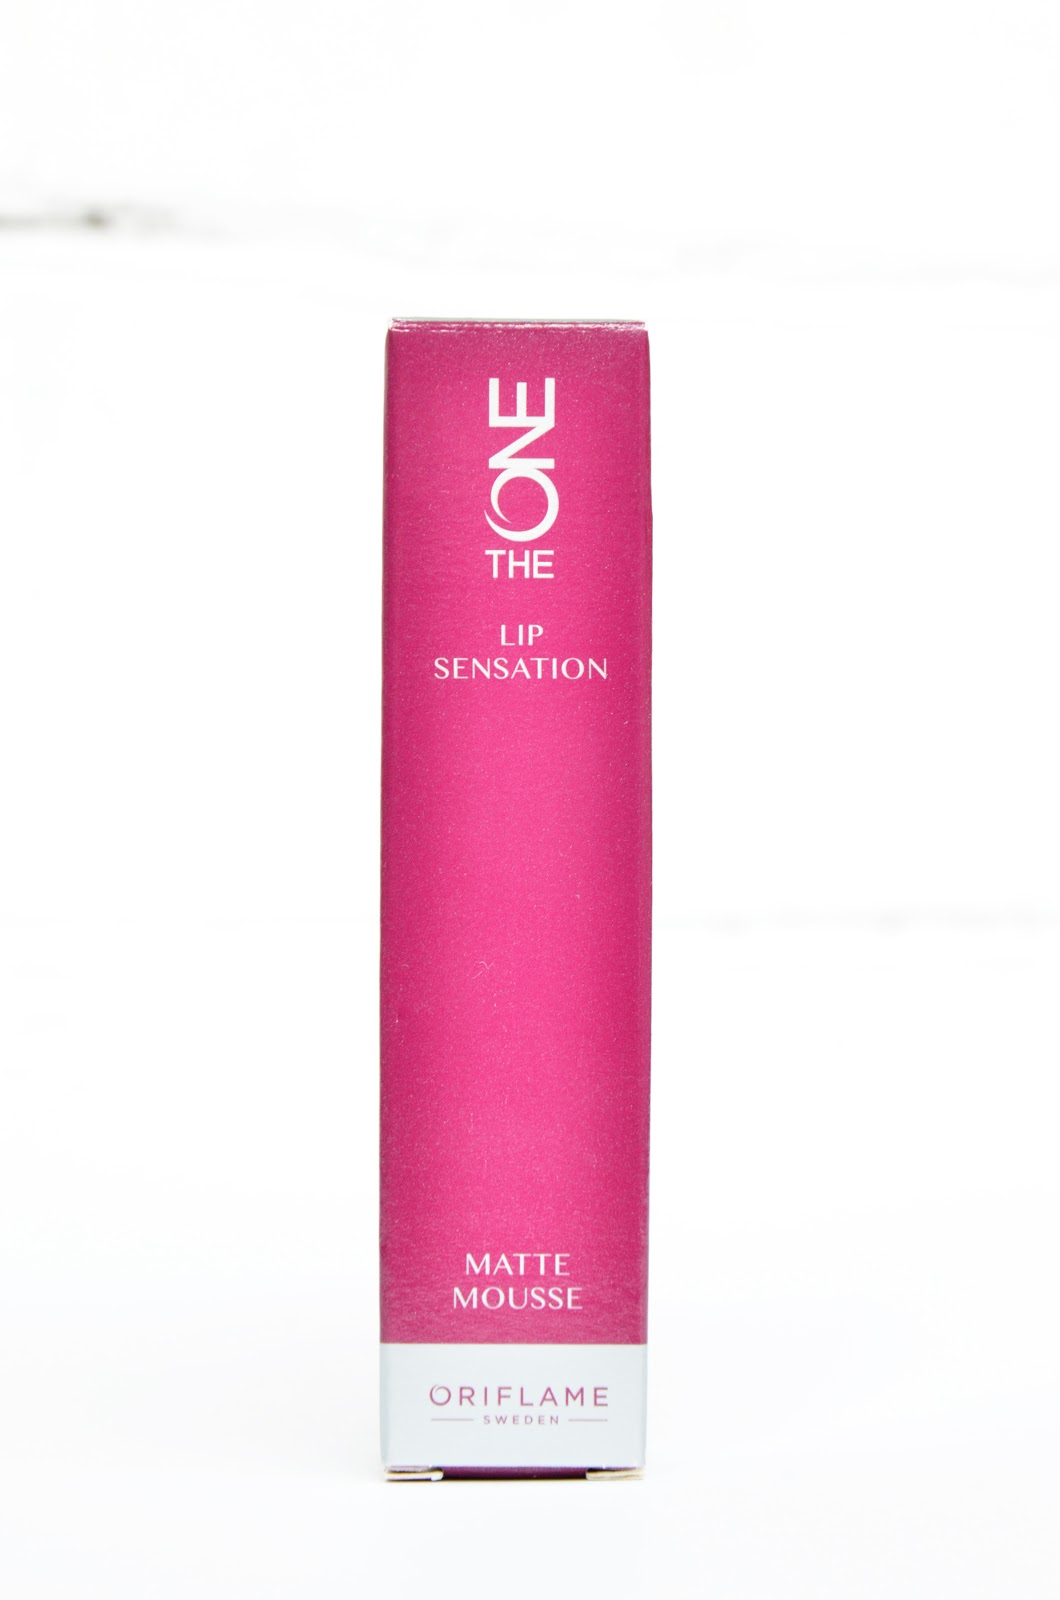 помада-мусс Oriflame The One Lip Sensation Matte Mousse